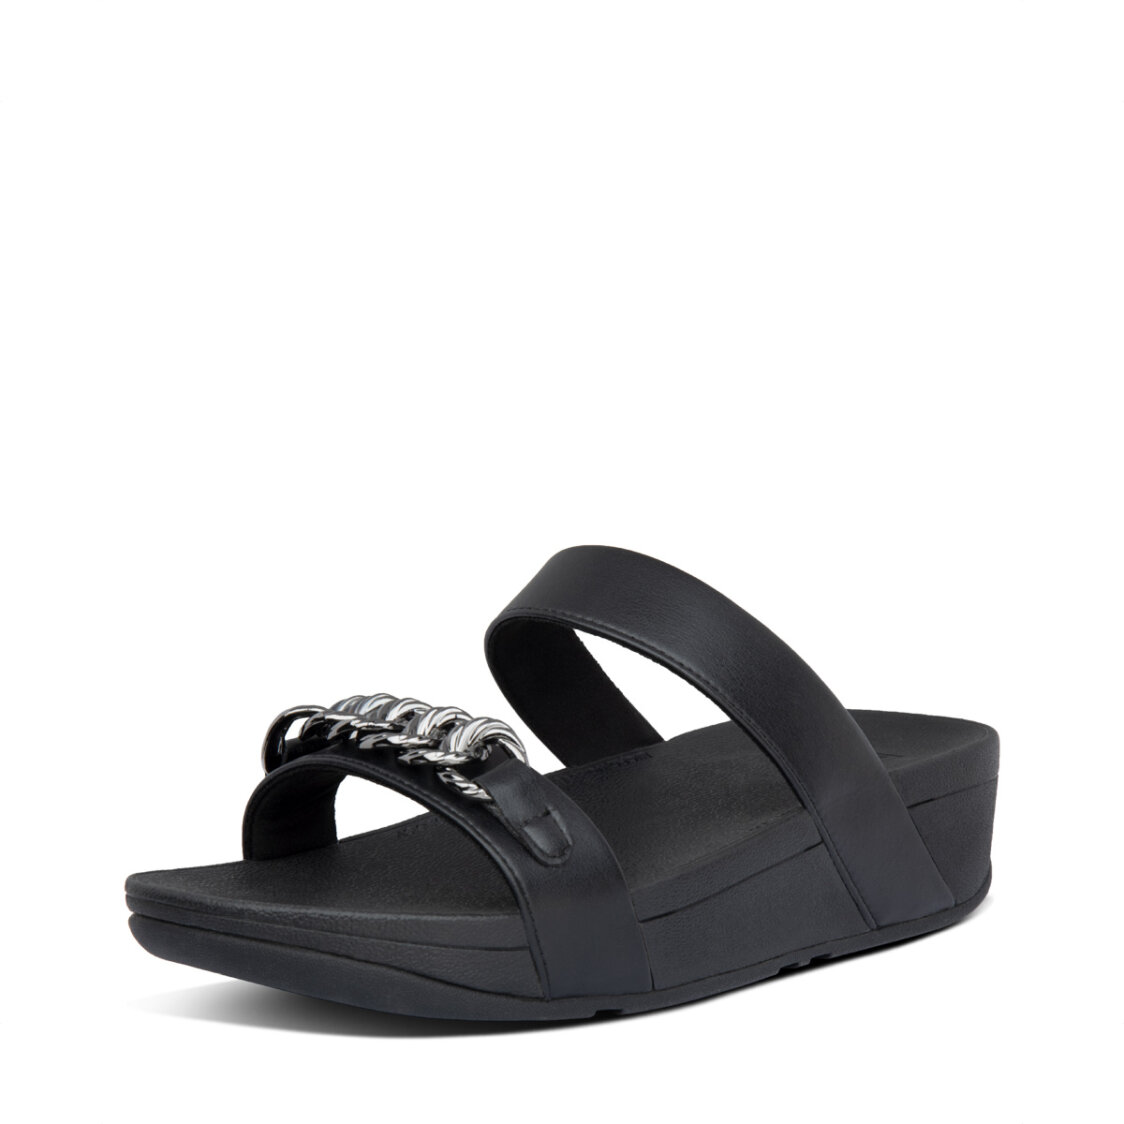 Fitflop Lottie Chain Slides All Black